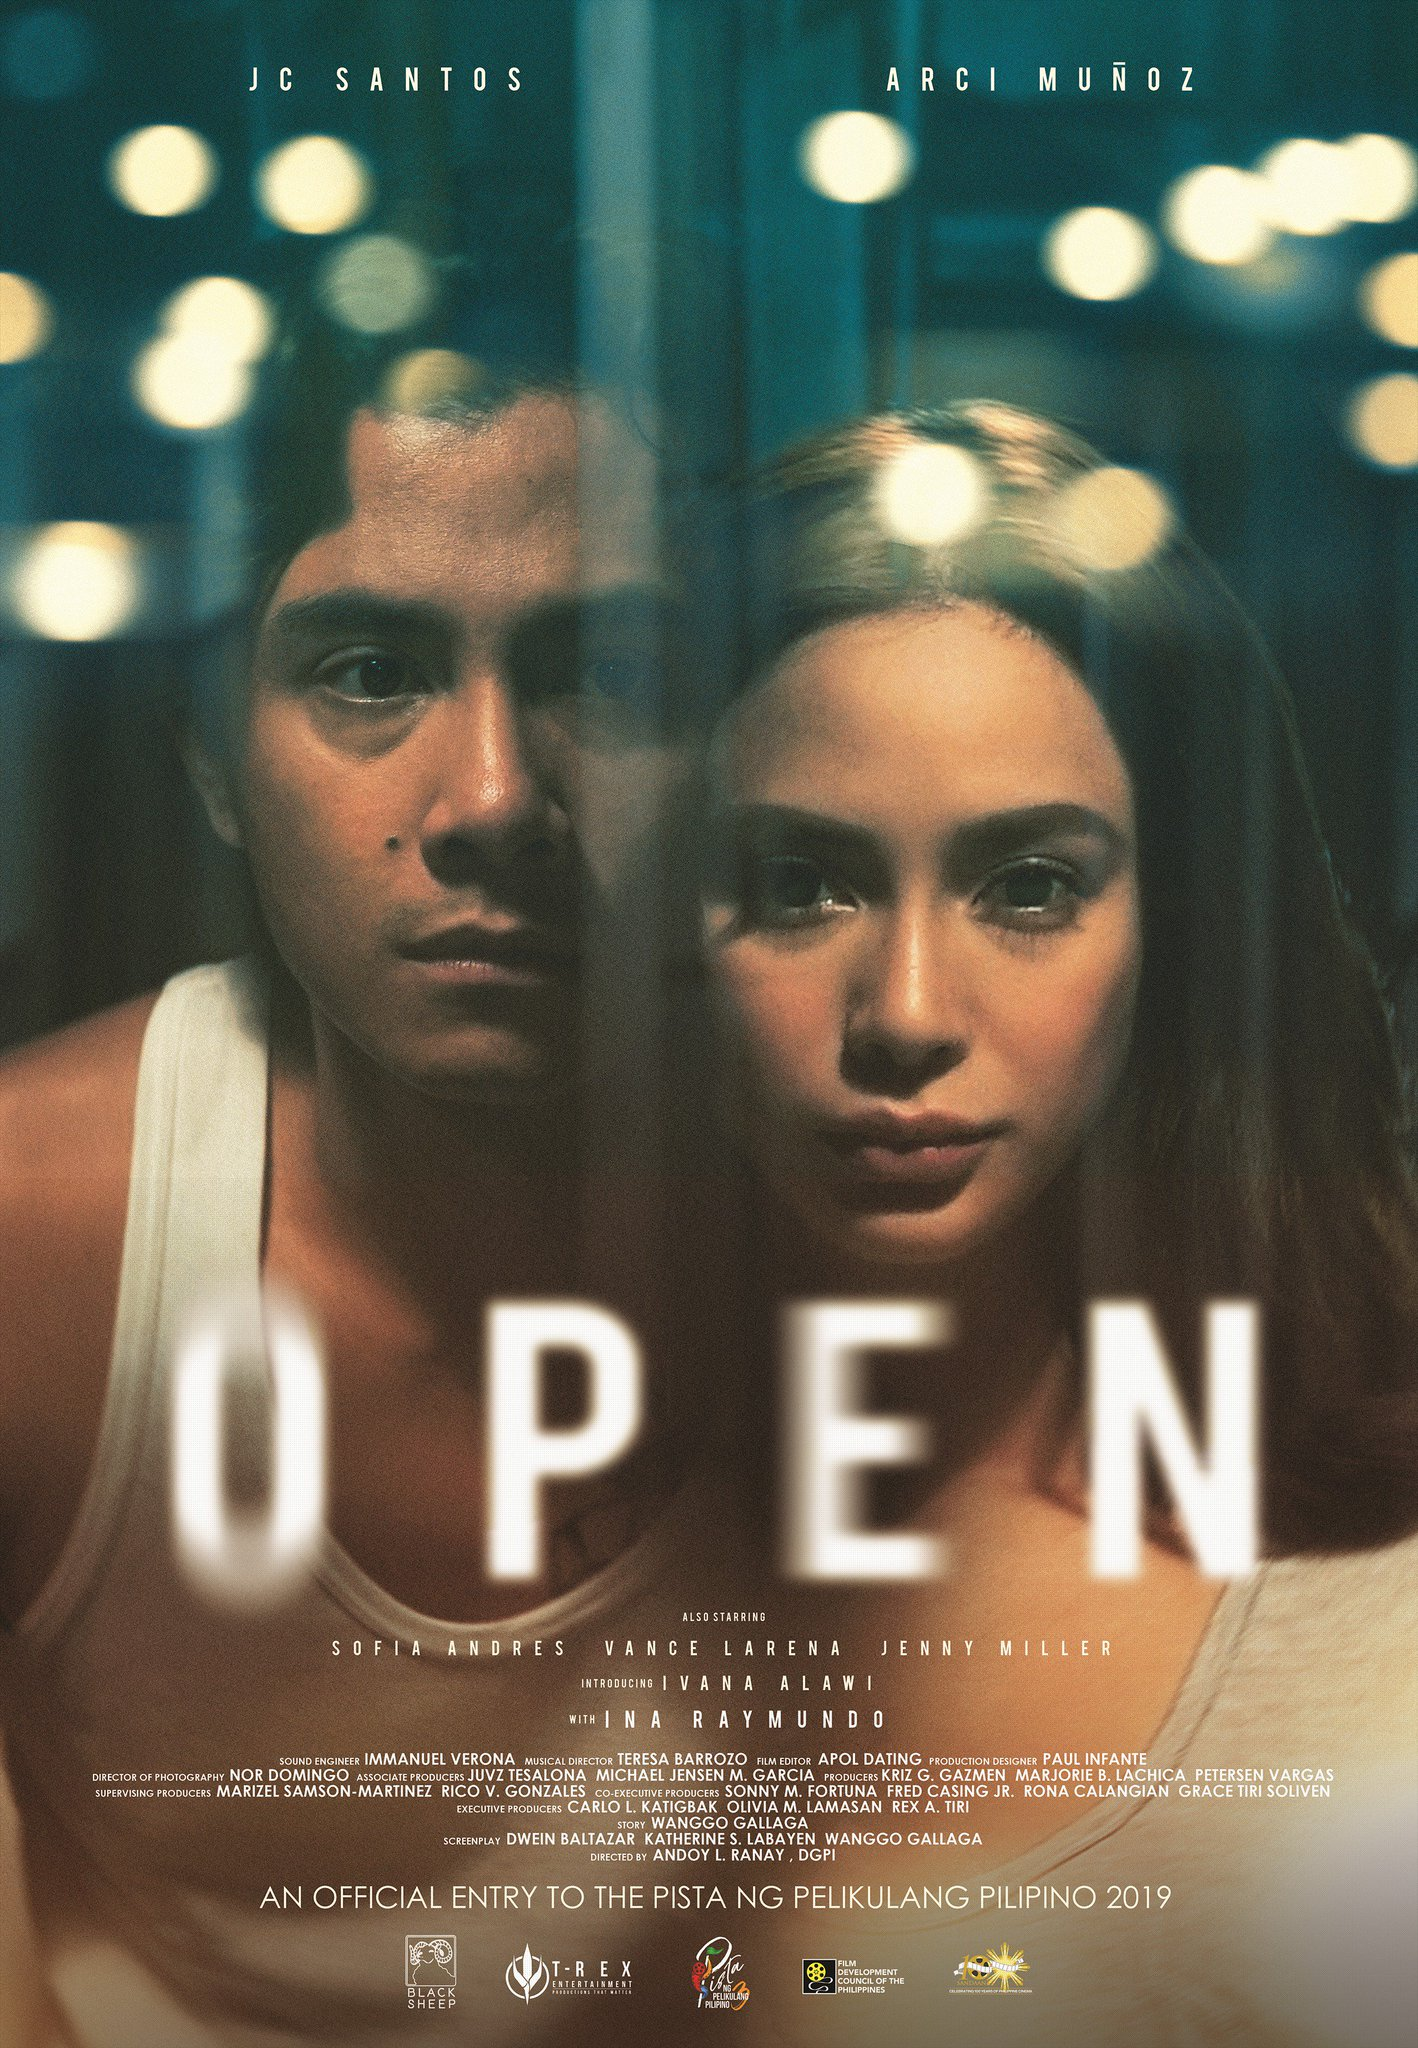 Image result for open movie arci munoz